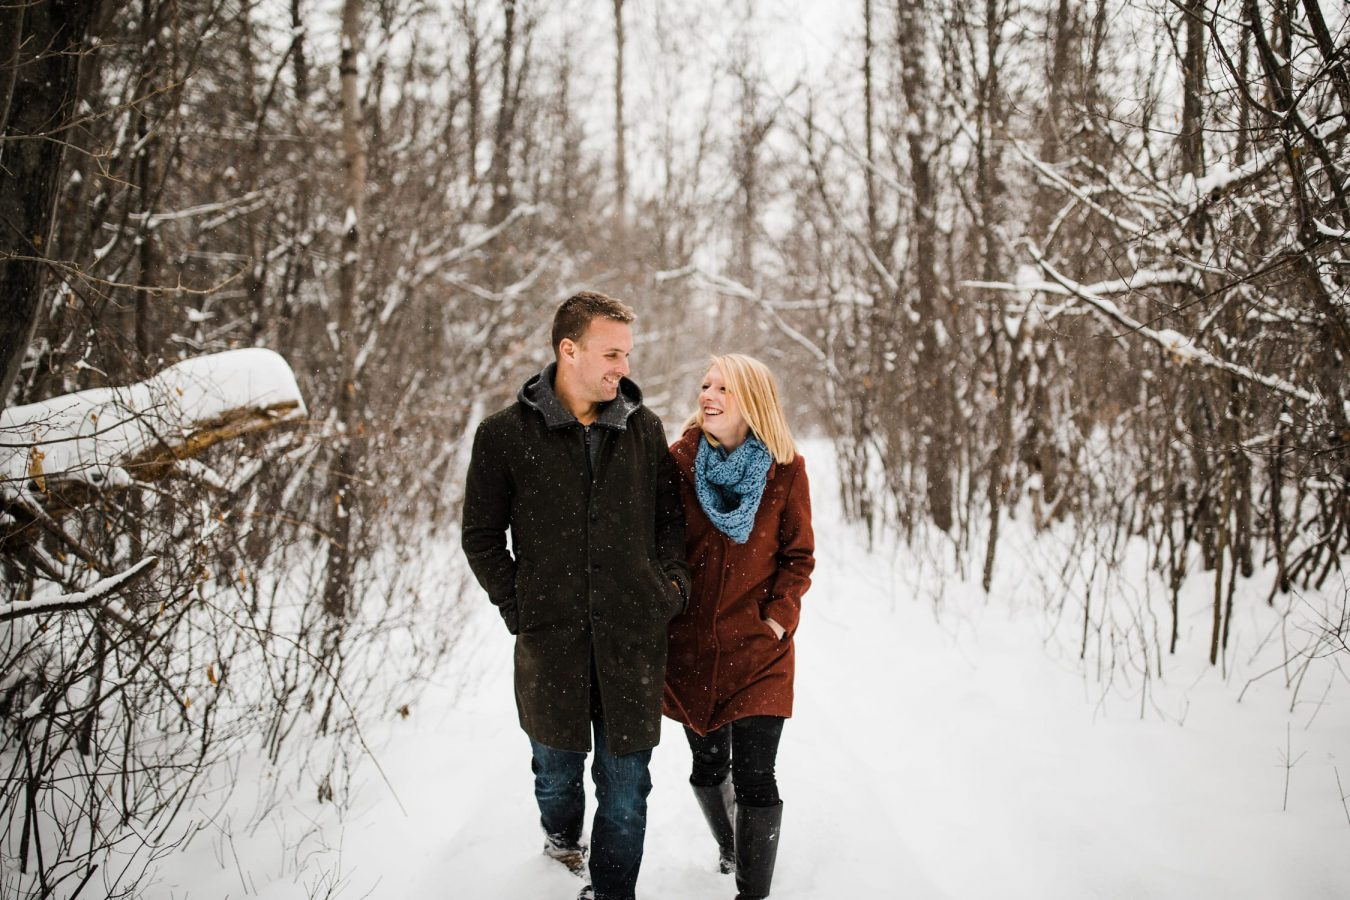 Couple walk a snowy pathway together